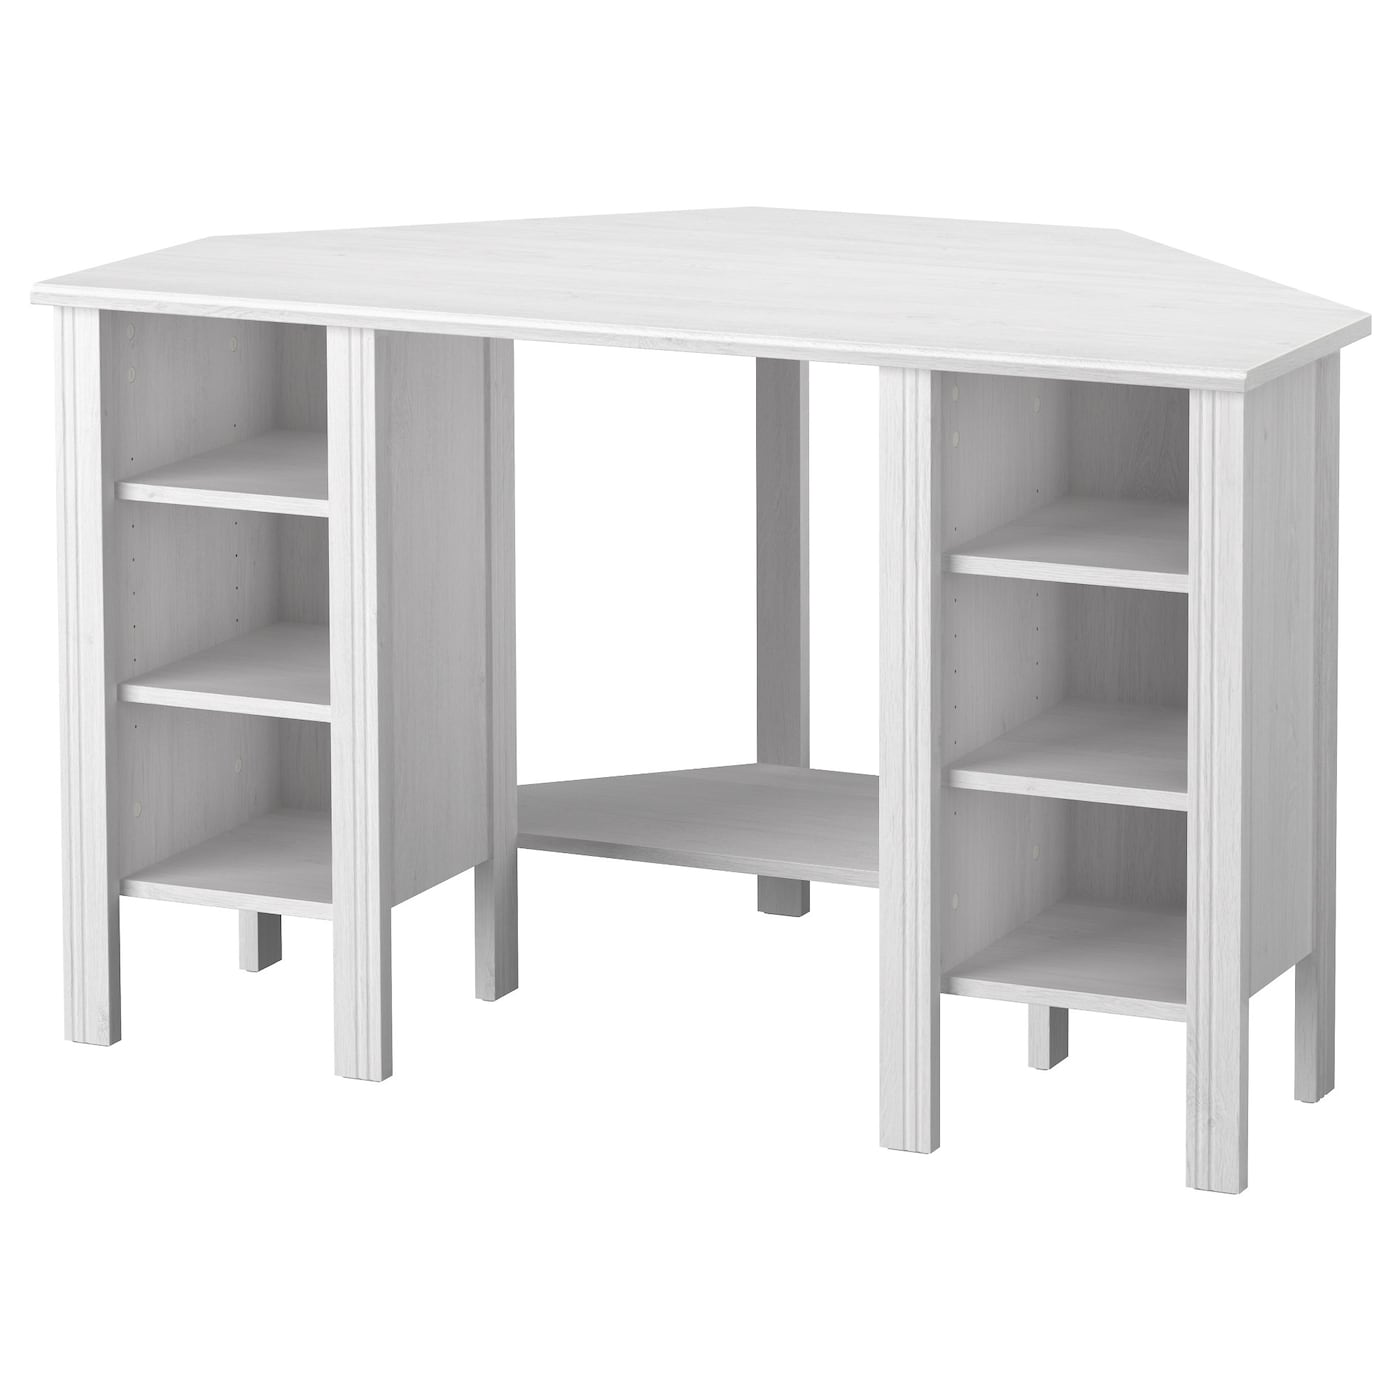 Ikea Brusali Corner Desk You Can Customise Your Storage As Needed Since The Shelves Are